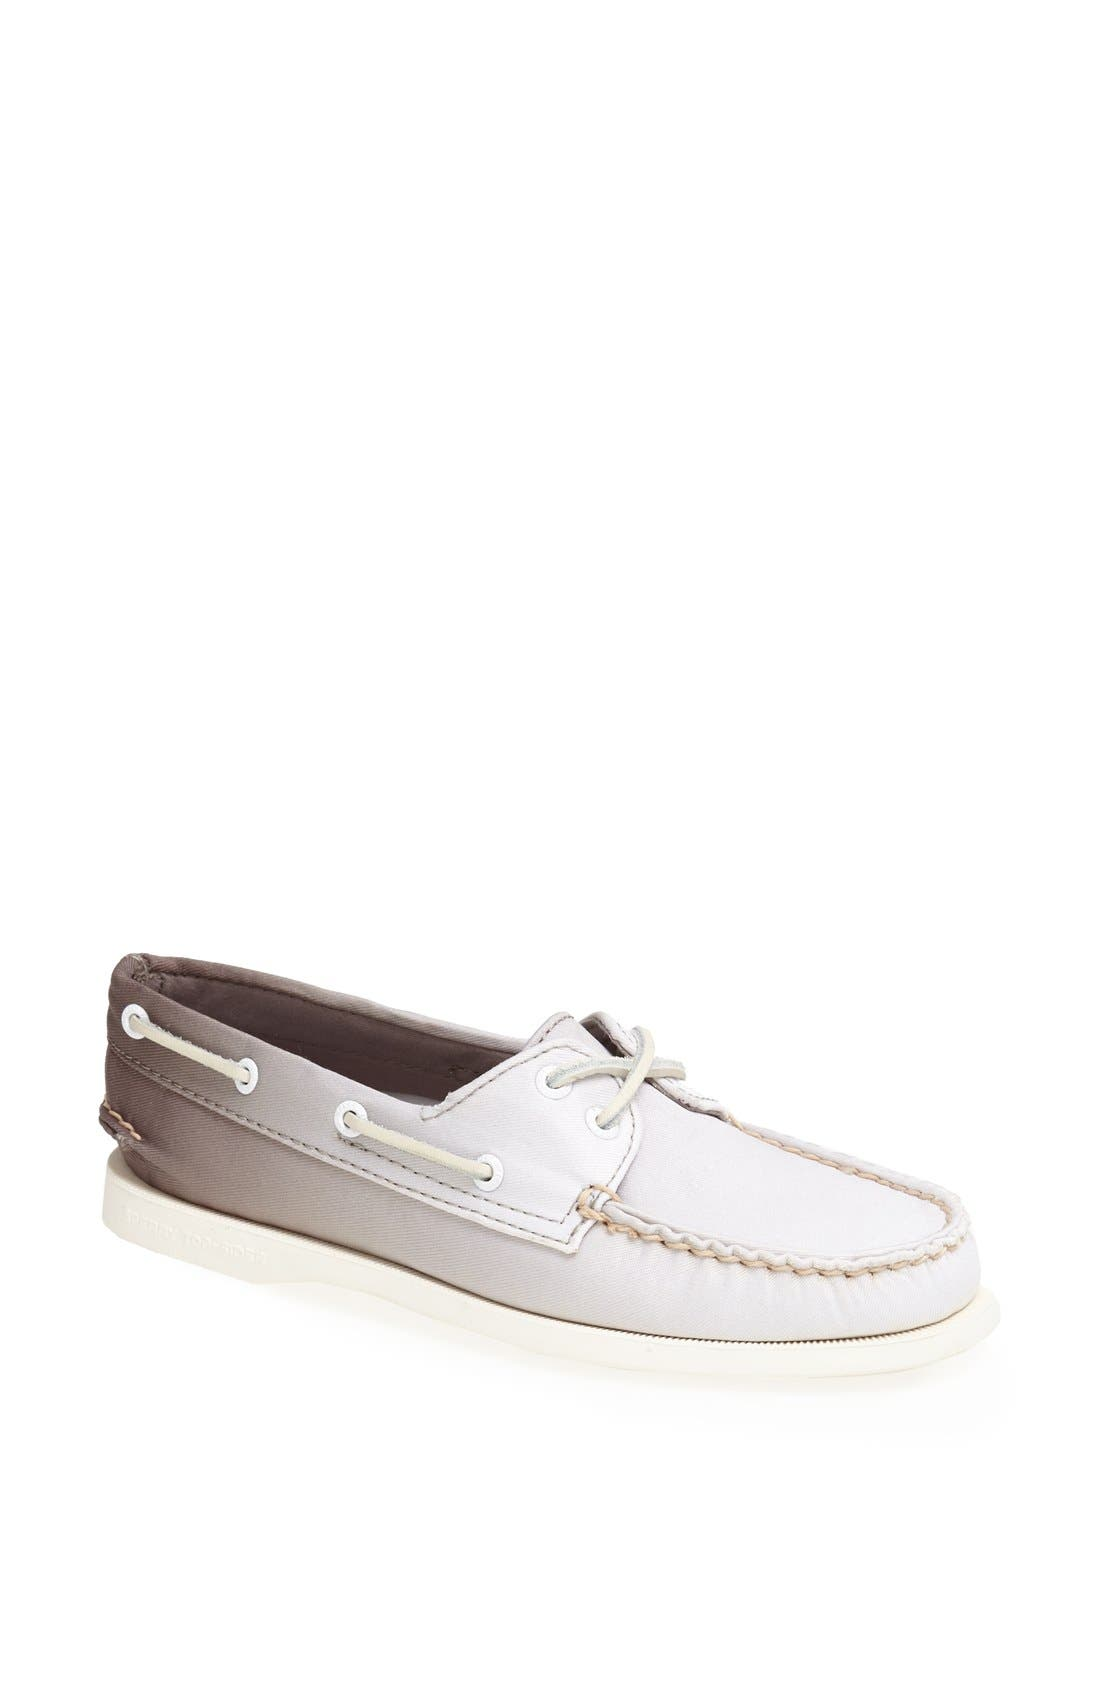 Alternate Image 1 Selected - Sperry 'Authentic Original' Boat Shoe (Women)